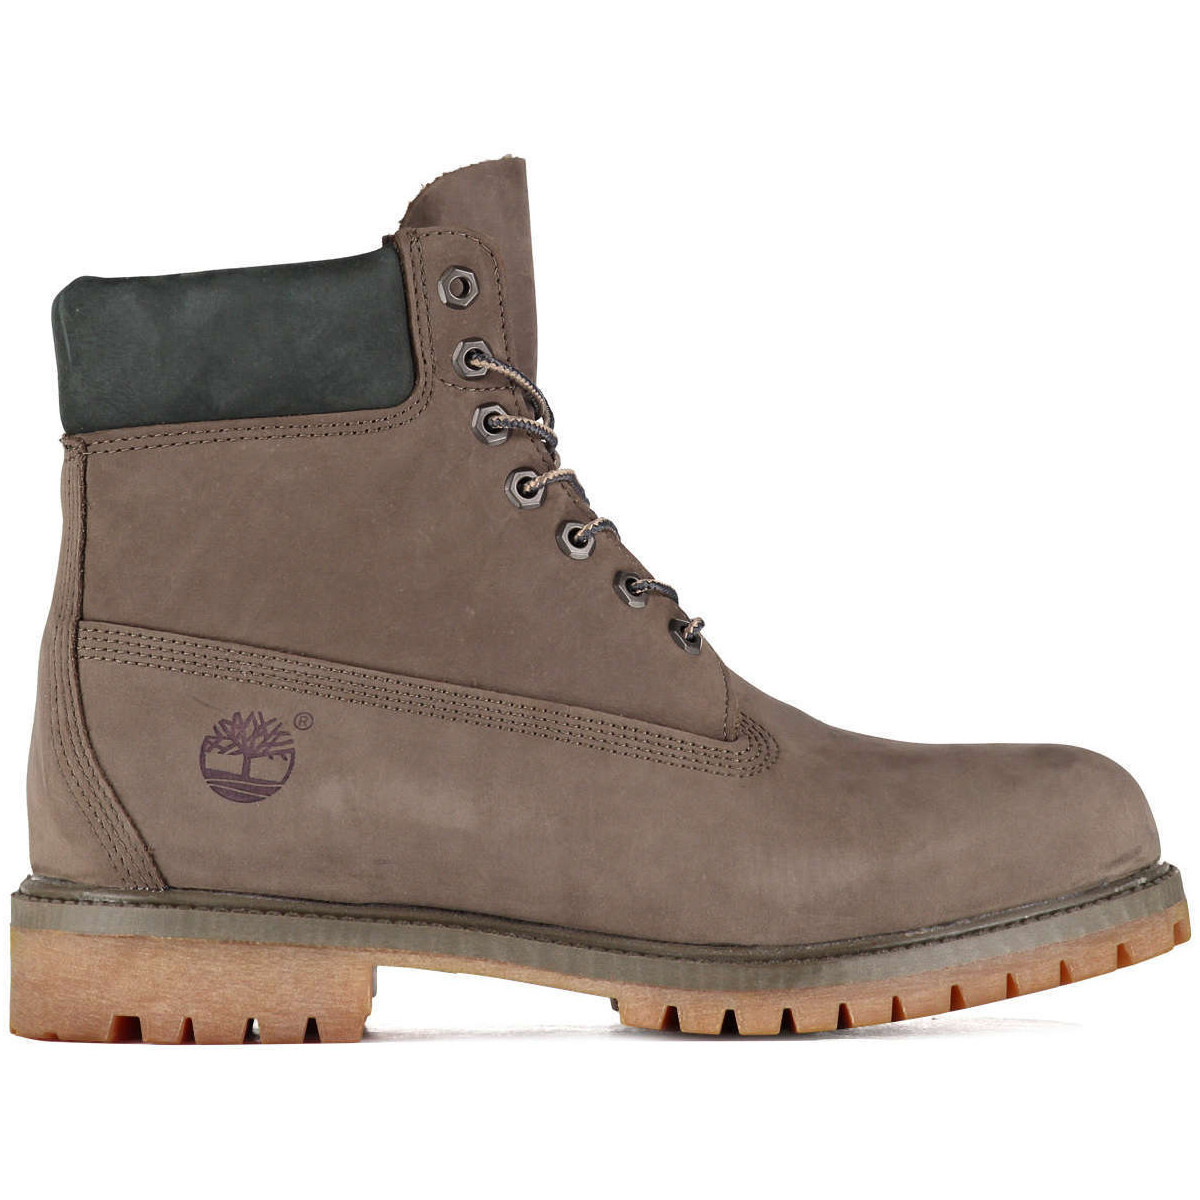 timberland boots icon 6 inch premium boot taupe homme. Black Bedroom Furniture Sets. Home Design Ideas